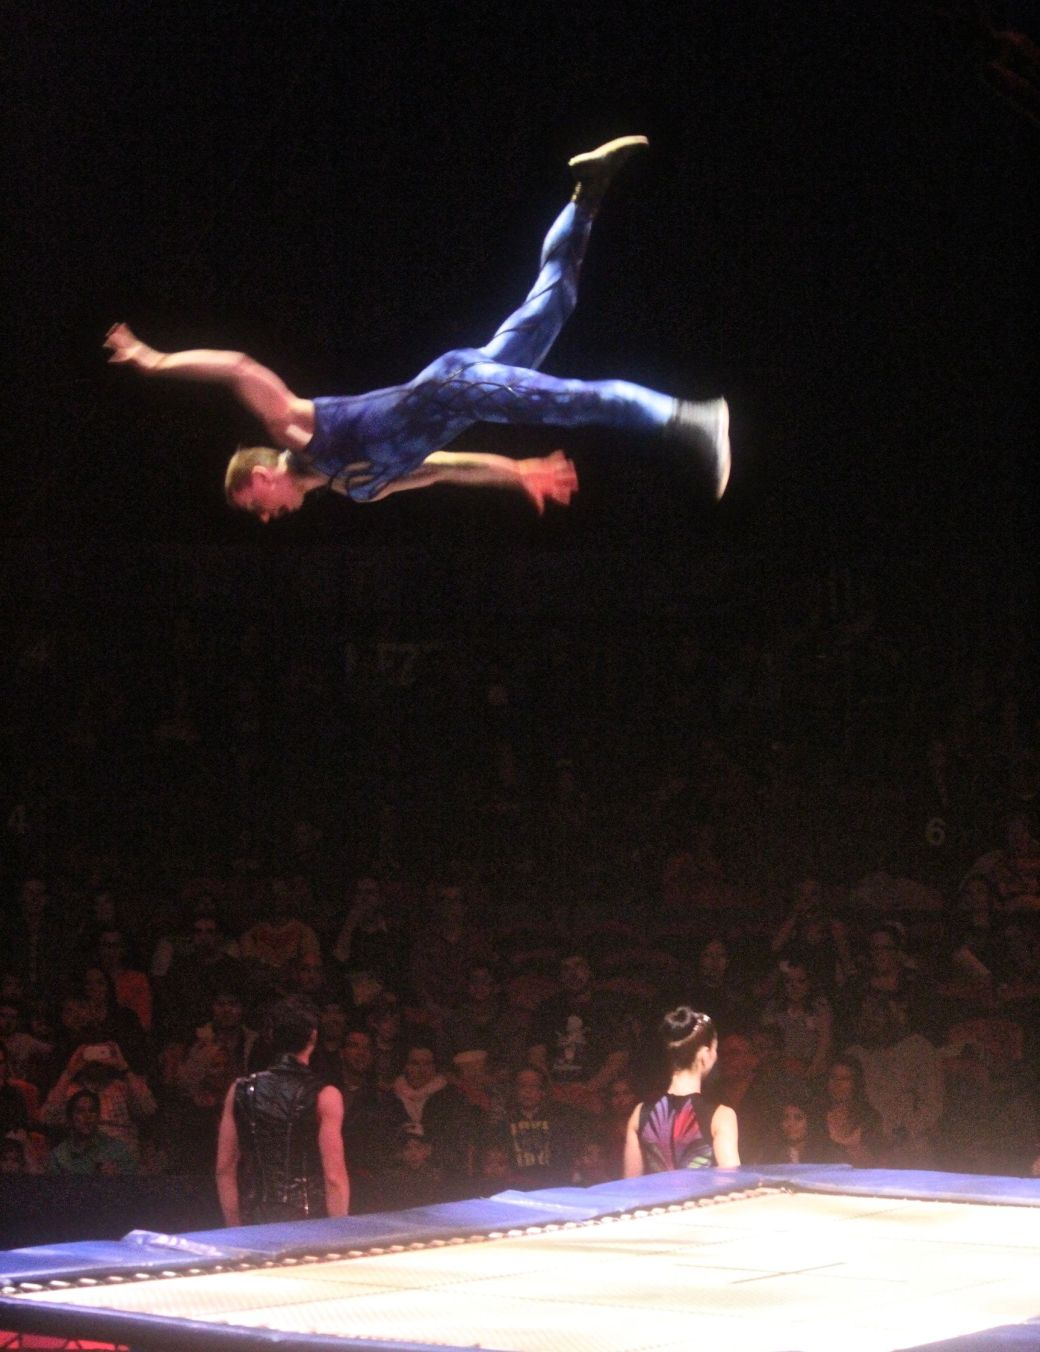 boston big apple circus performance april 29 2015 5